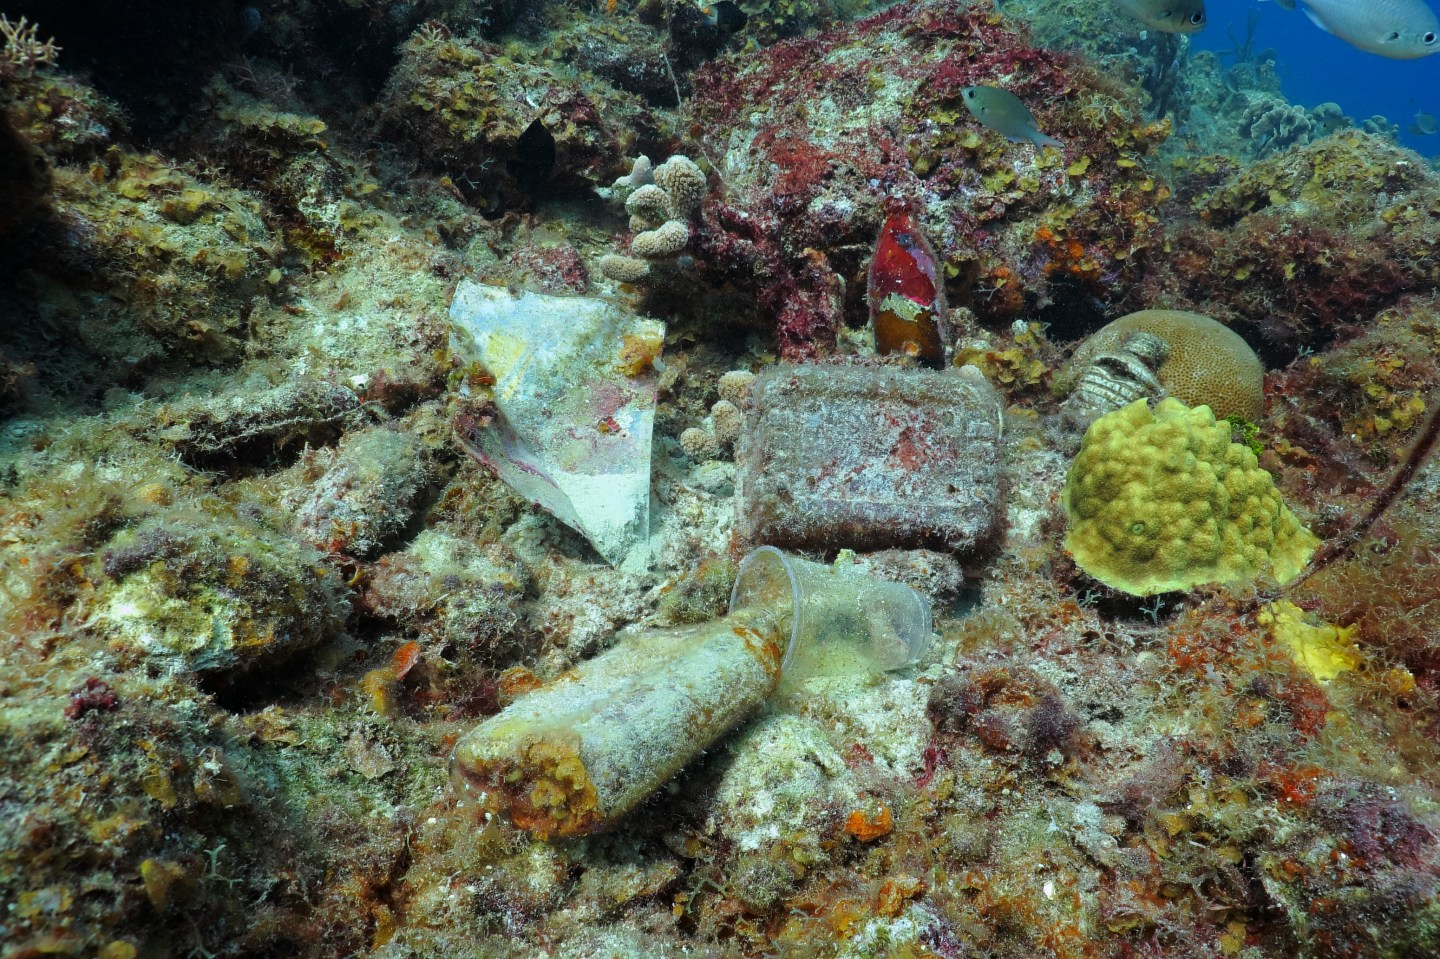 Coral reef conservation: Garbage and plastic bottles on a coral reef